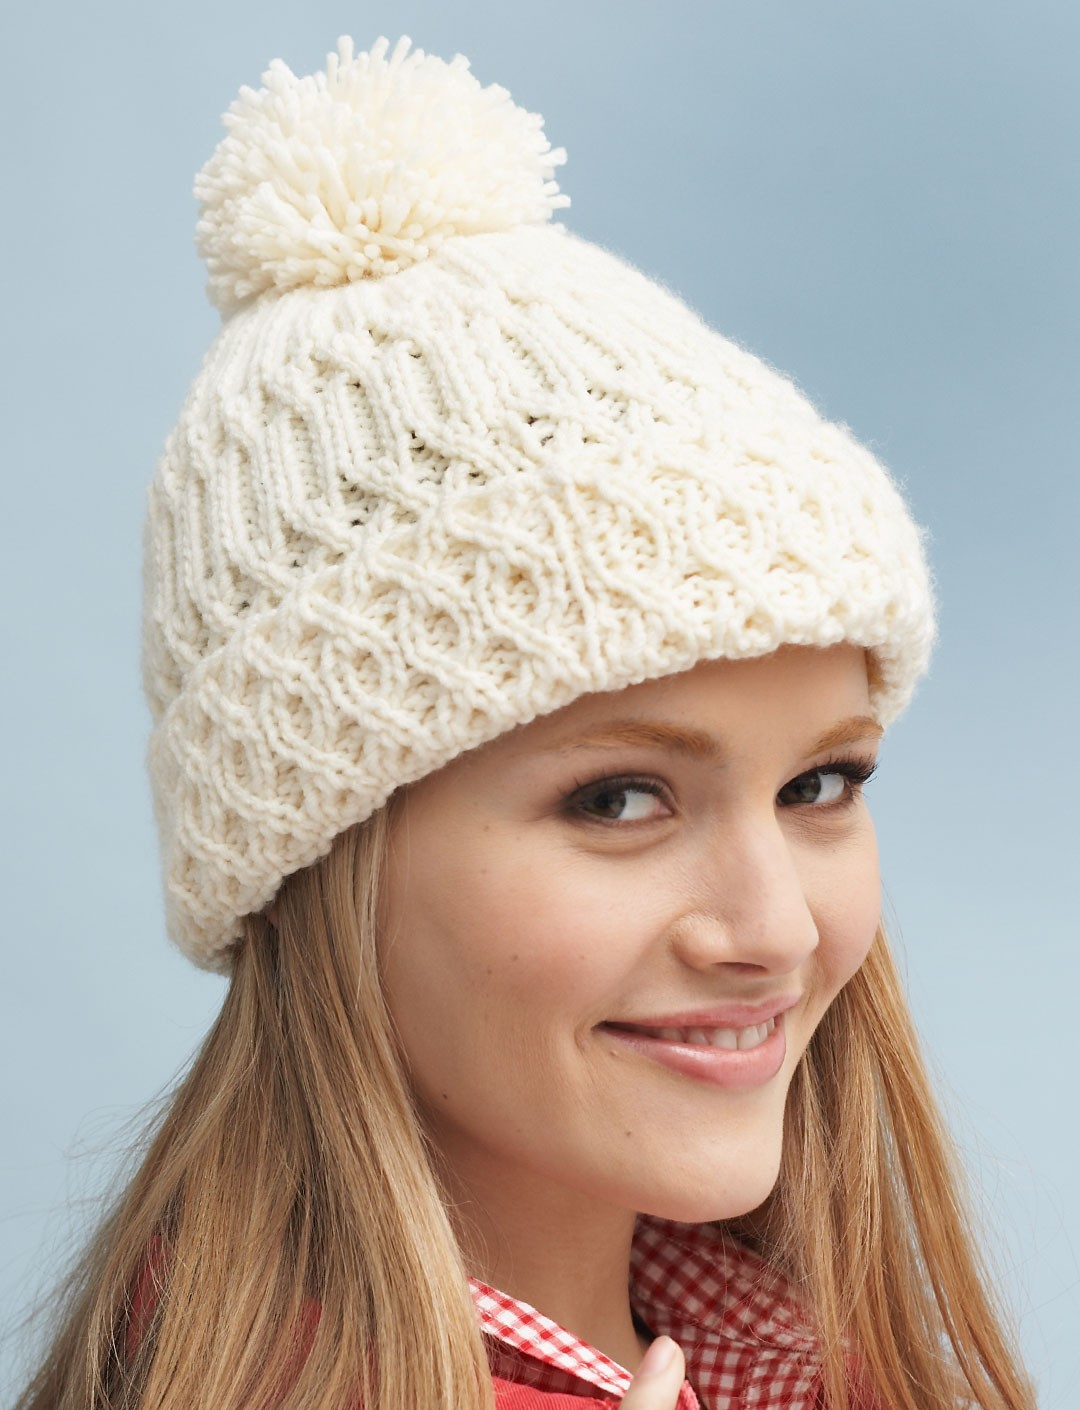 Bobble Hat Knitting Pattern Free The Easy Hat Knitting Patterns Crochet And Knitting Patterns 2019